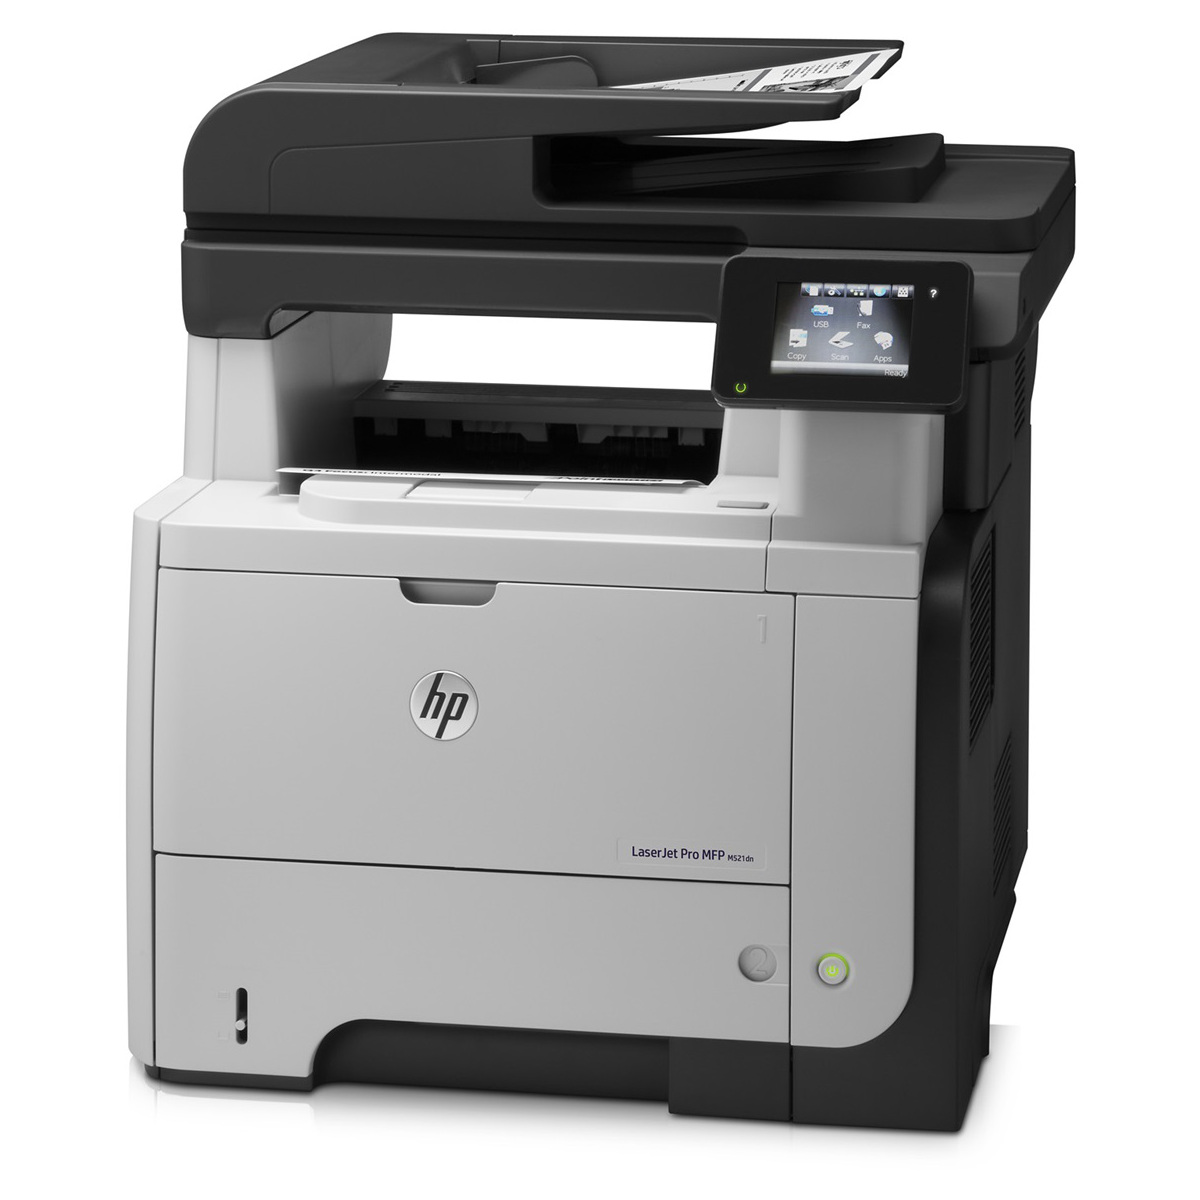 hp laserjet pro m521dn imprimante multifonction hp sur ldlc. Black Bedroom Furniture Sets. Home Design Ideas